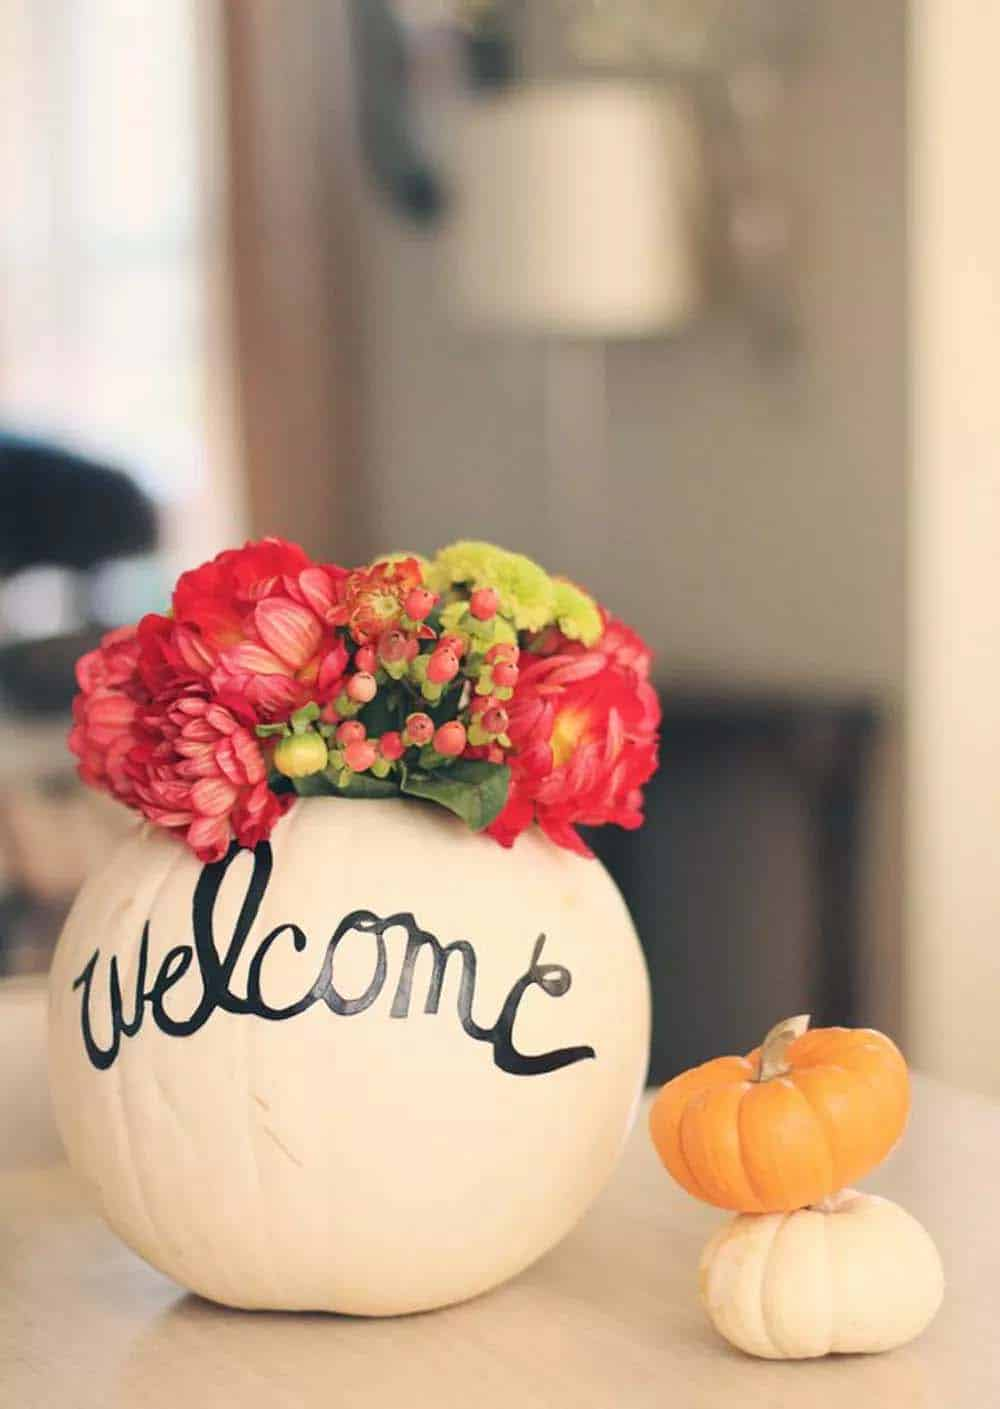 welcome-pumpkin-flowers